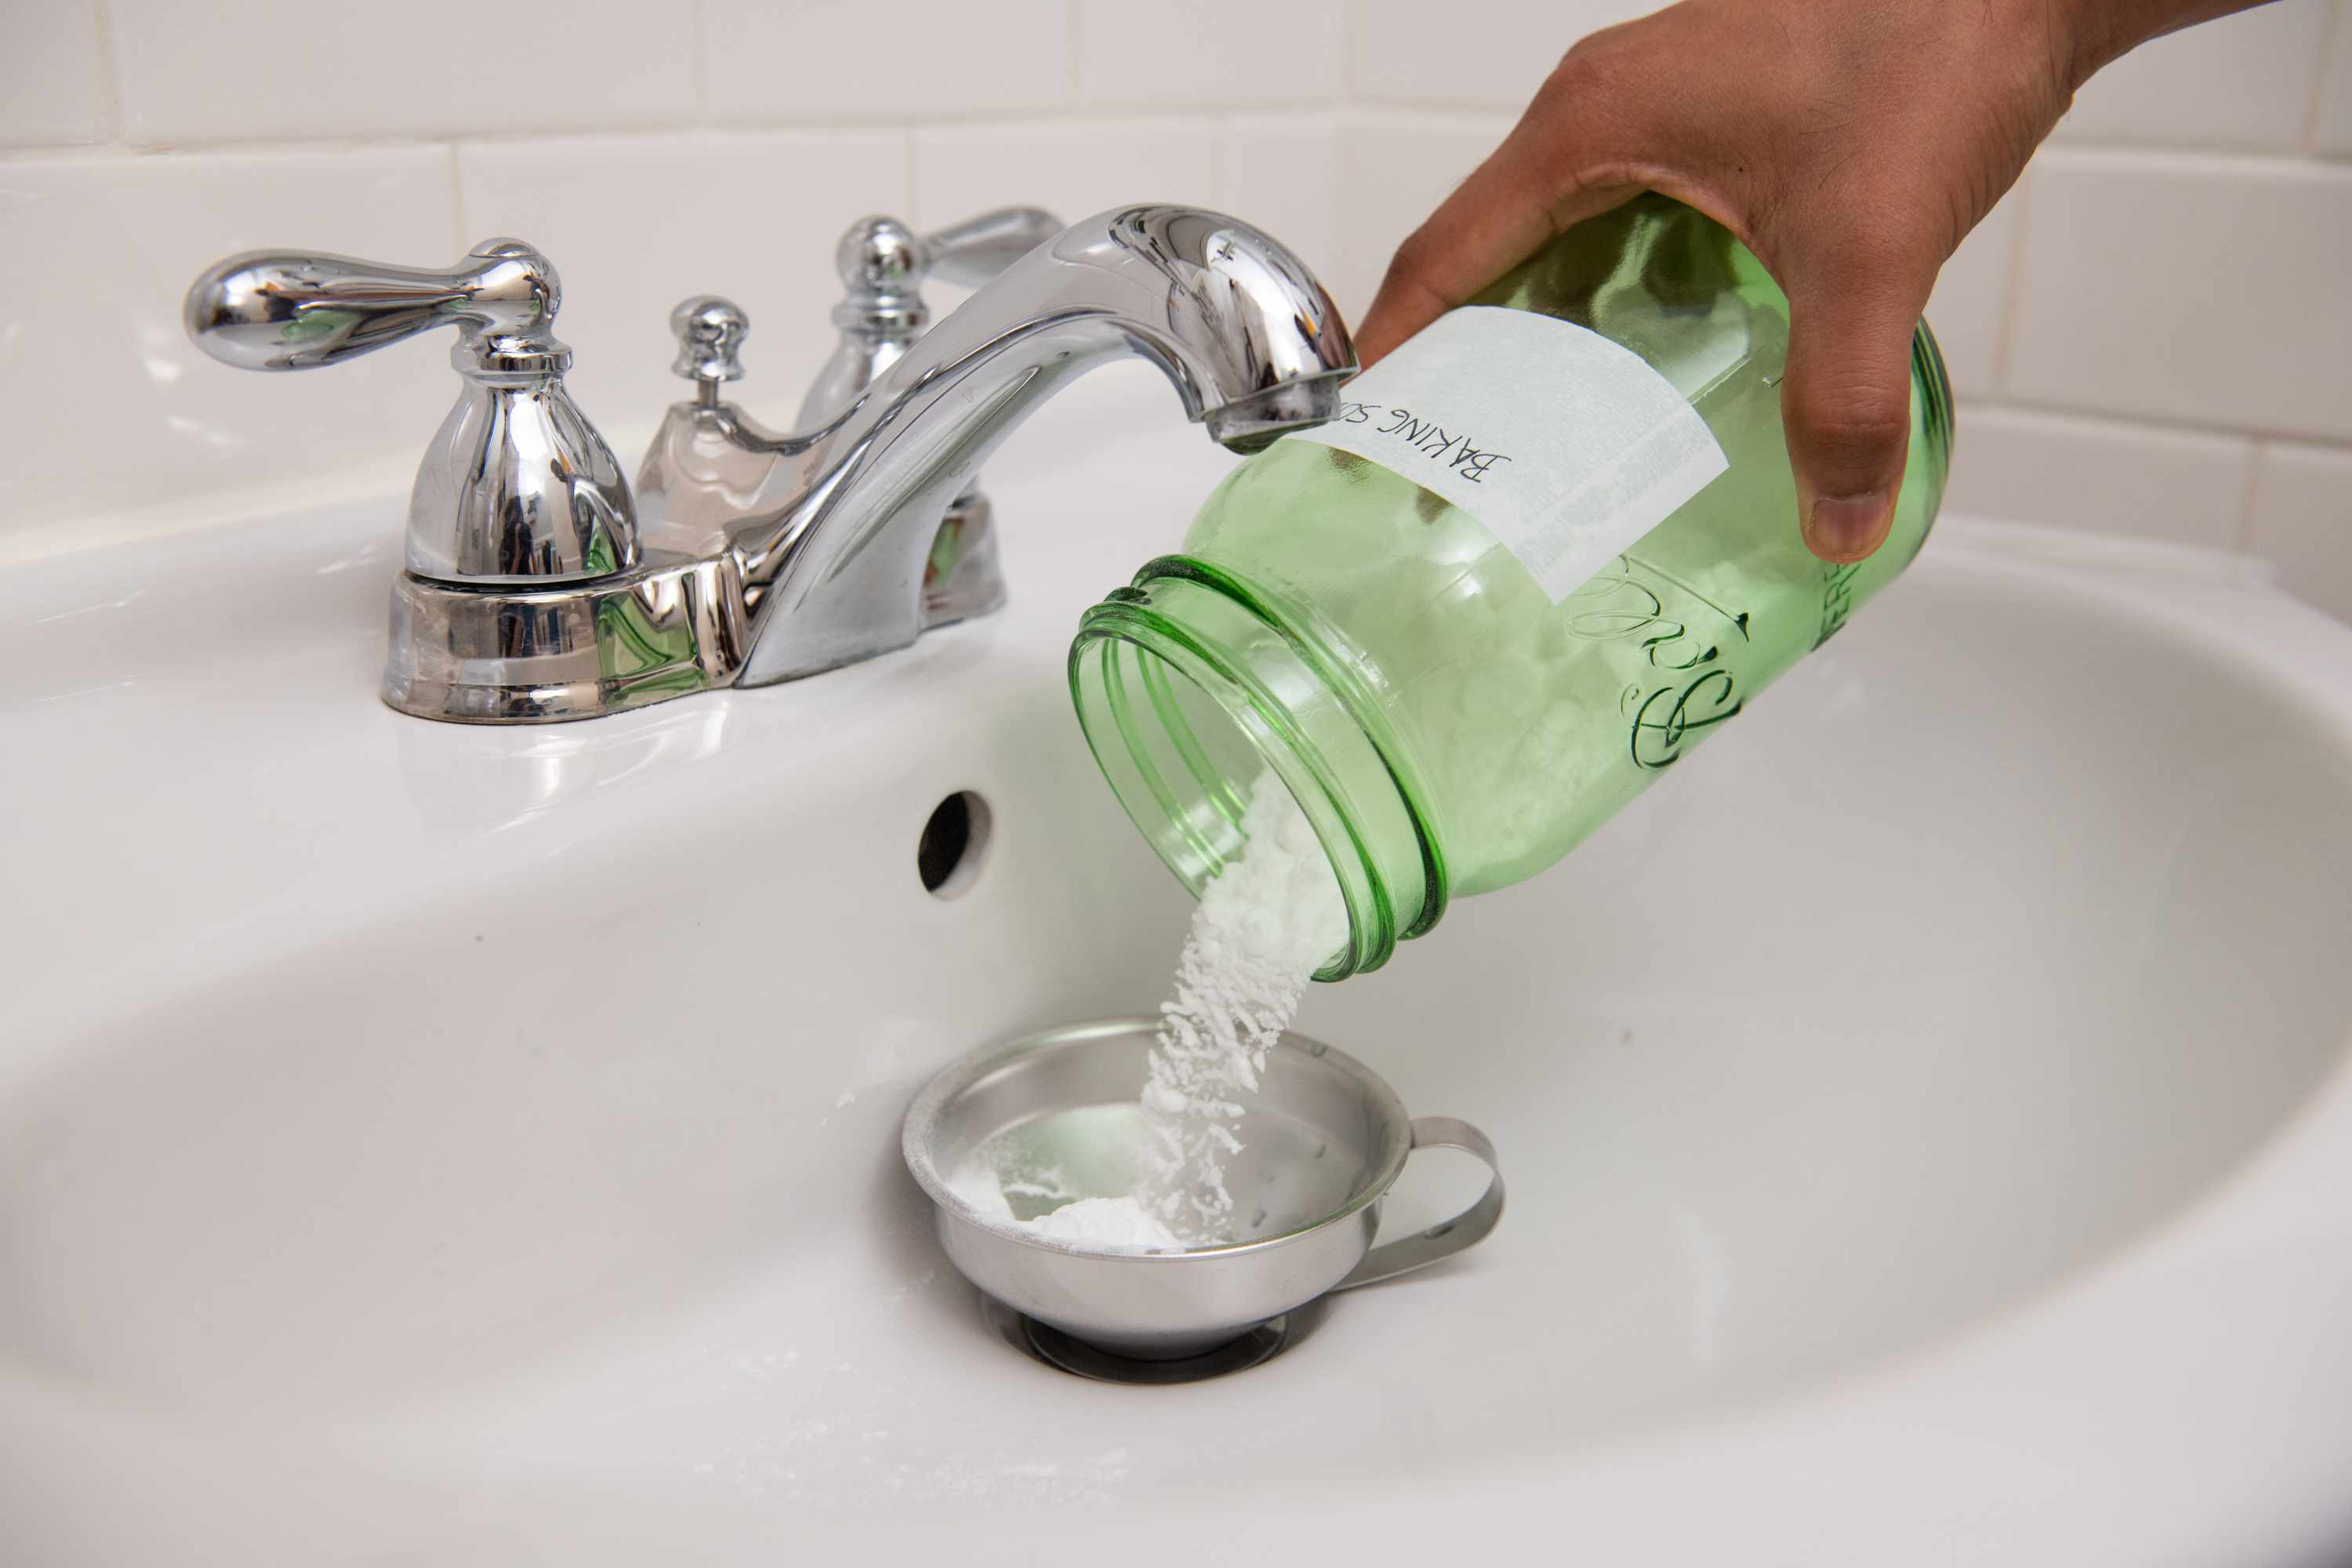 to clean a clogged drain with baking soda